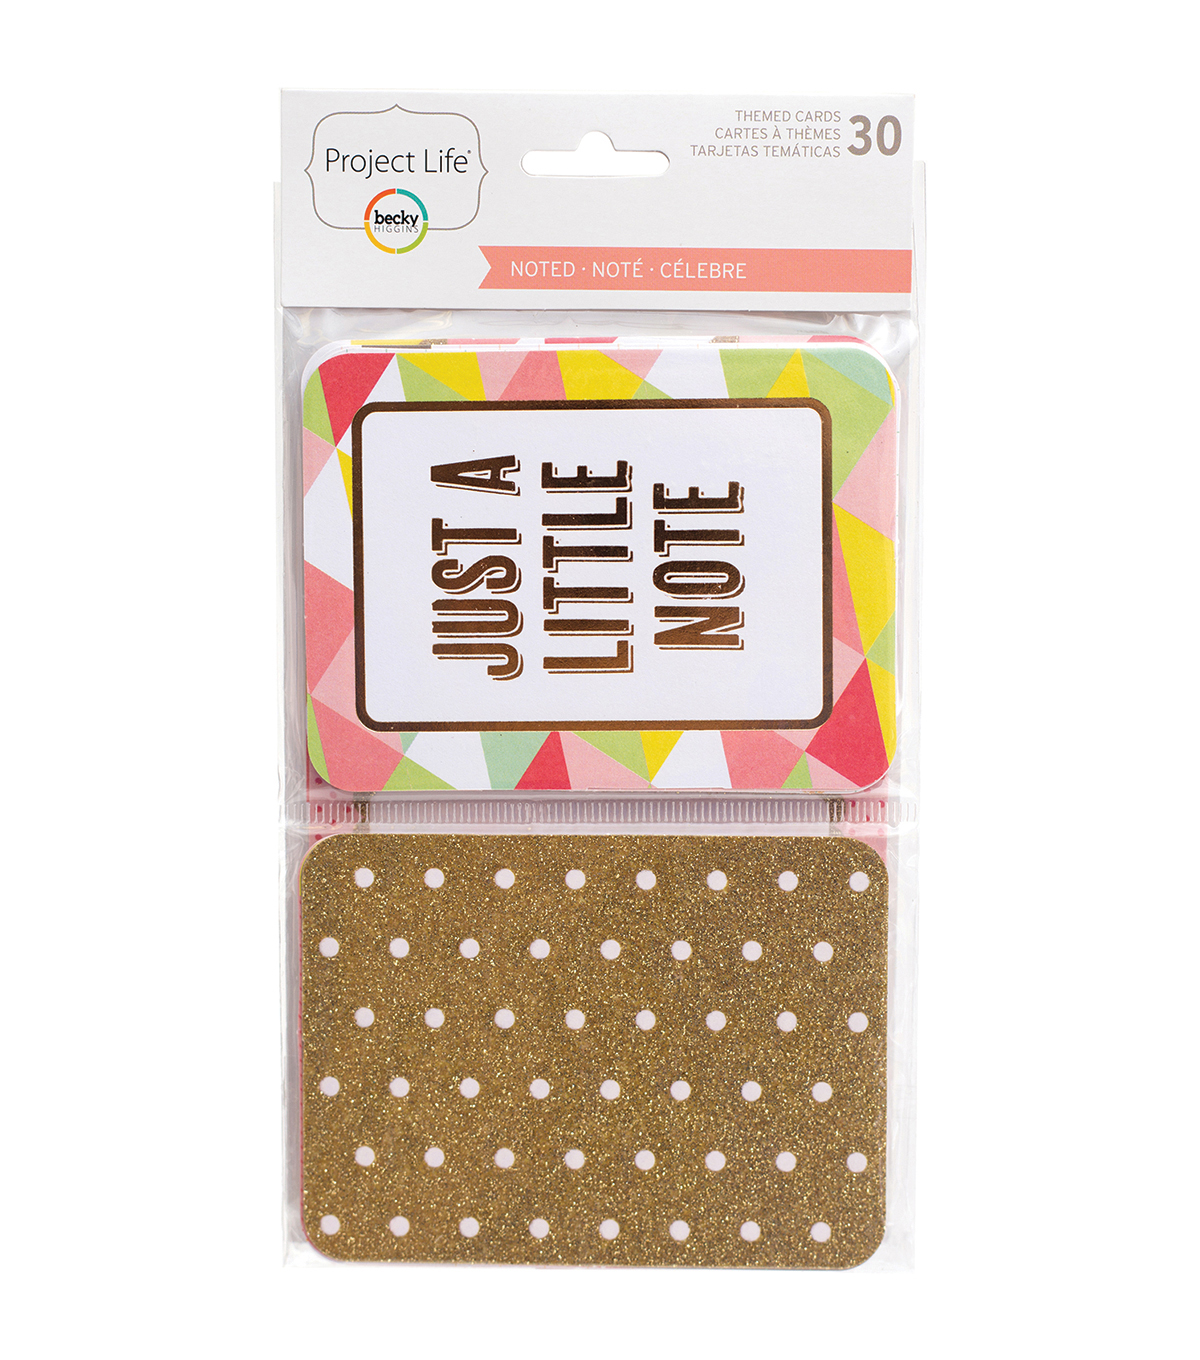 Project Life Specialty Themed Cards 30/Pkg-Noted